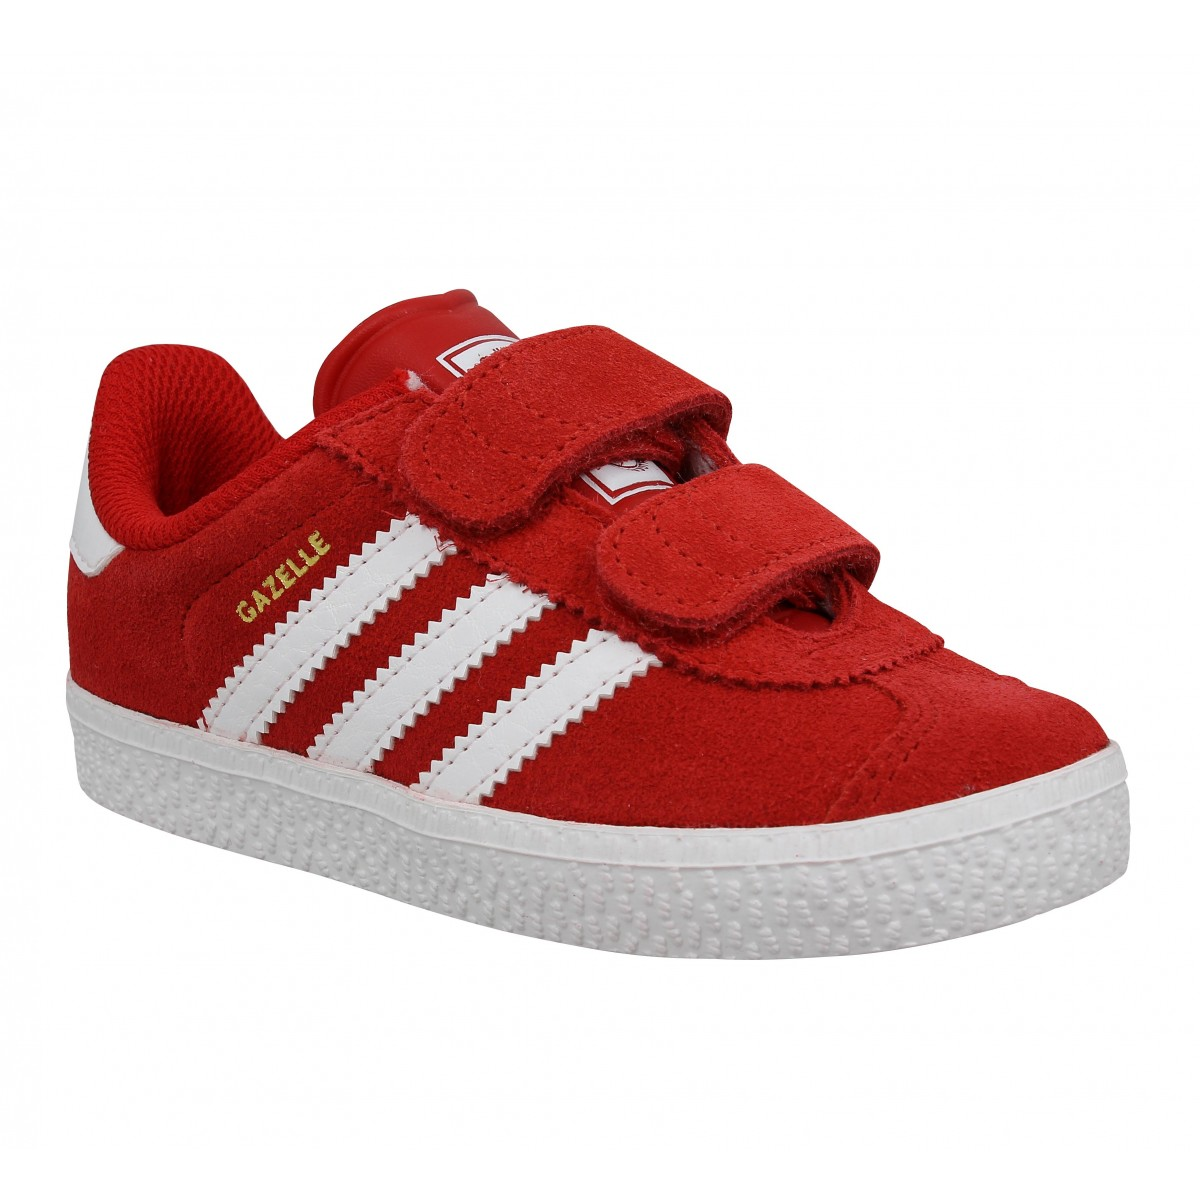 adidas gazelle 2 velcro enfant rouge fanny chaussures. Black Bedroom Furniture Sets. Home Design Ideas